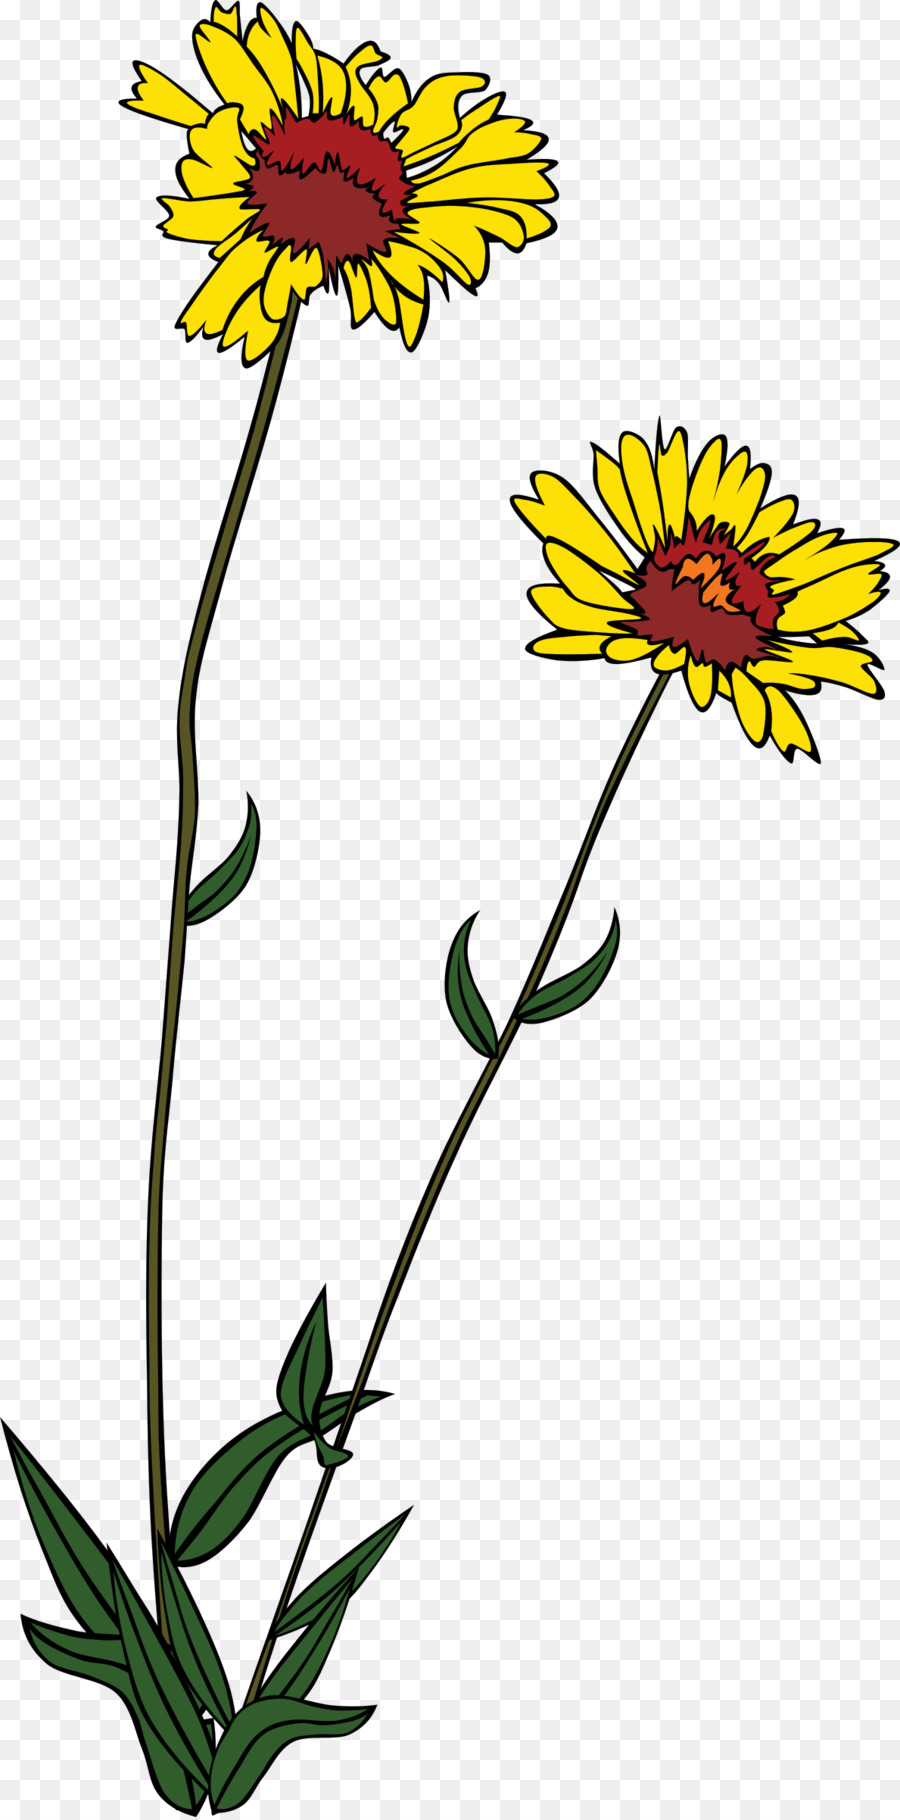 Daisy clipart wildflower. Black and white flower